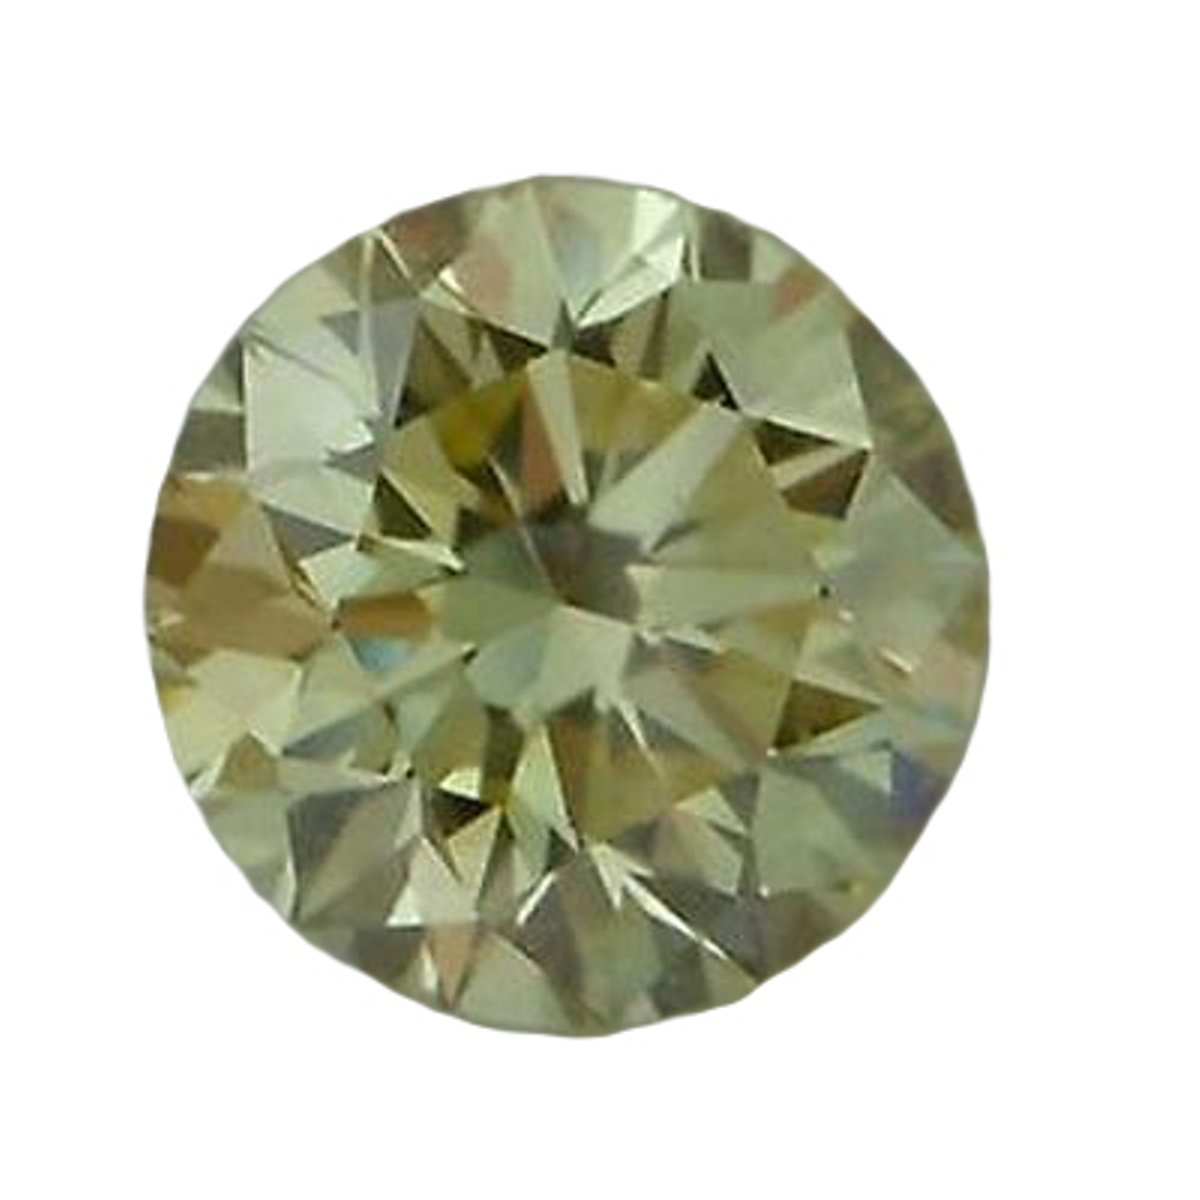 RINGJEWEL 1.77 CT VVS1 8.00 MM Round Cut Loose Real Moissanite Use 4 Pendant/Ring Off White Light Brown Color